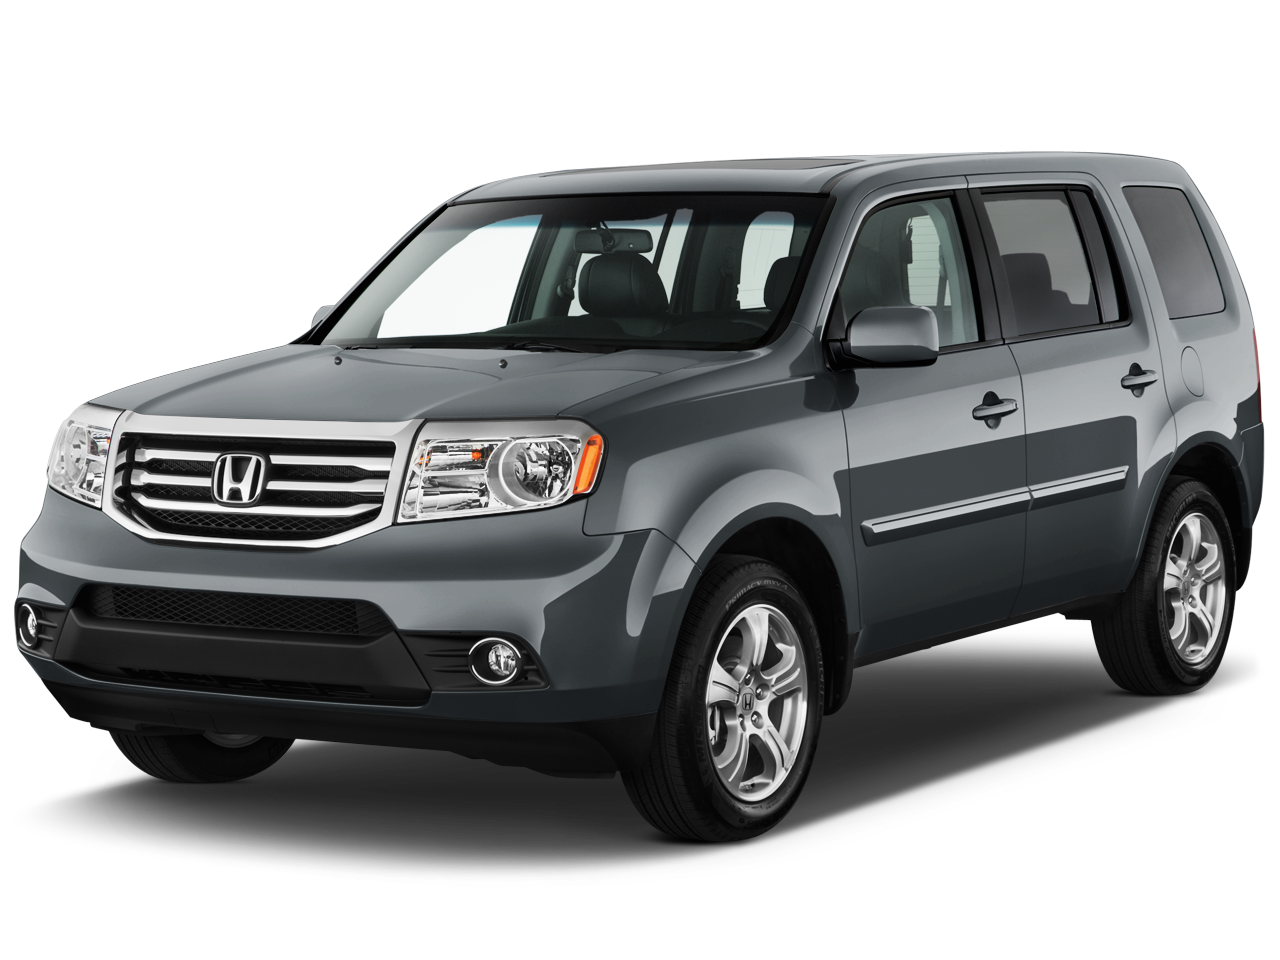 used one owner 2014 honda pilot ex l near massillon oh waikem honda. Black Bedroom Furniture Sets. Home Design Ideas